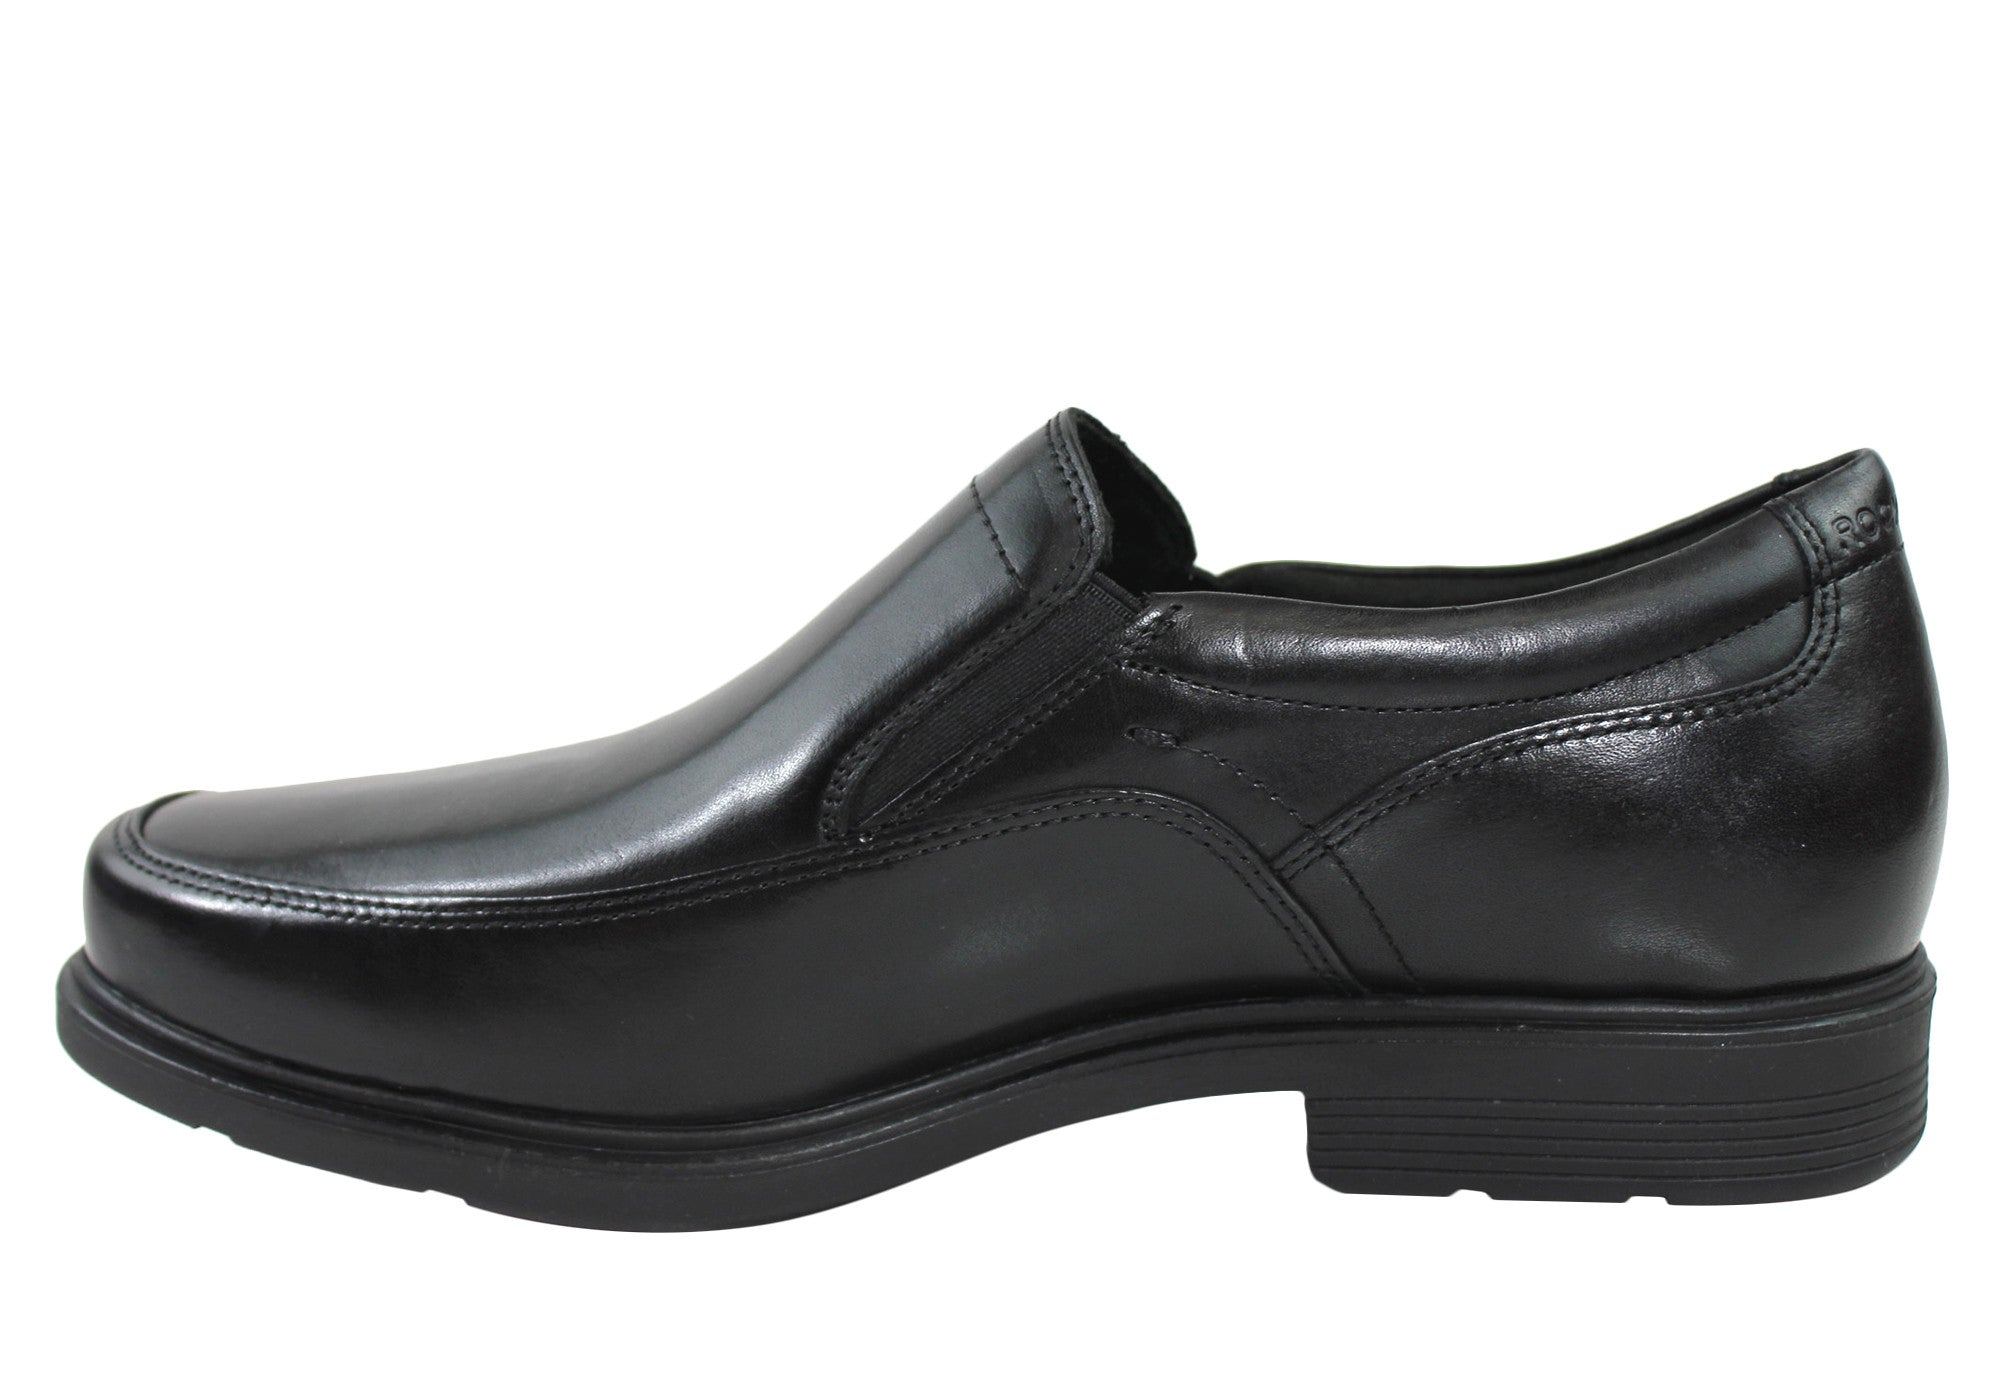 Rockport Style Tip Double Gore Mens Leather Dress Shoes